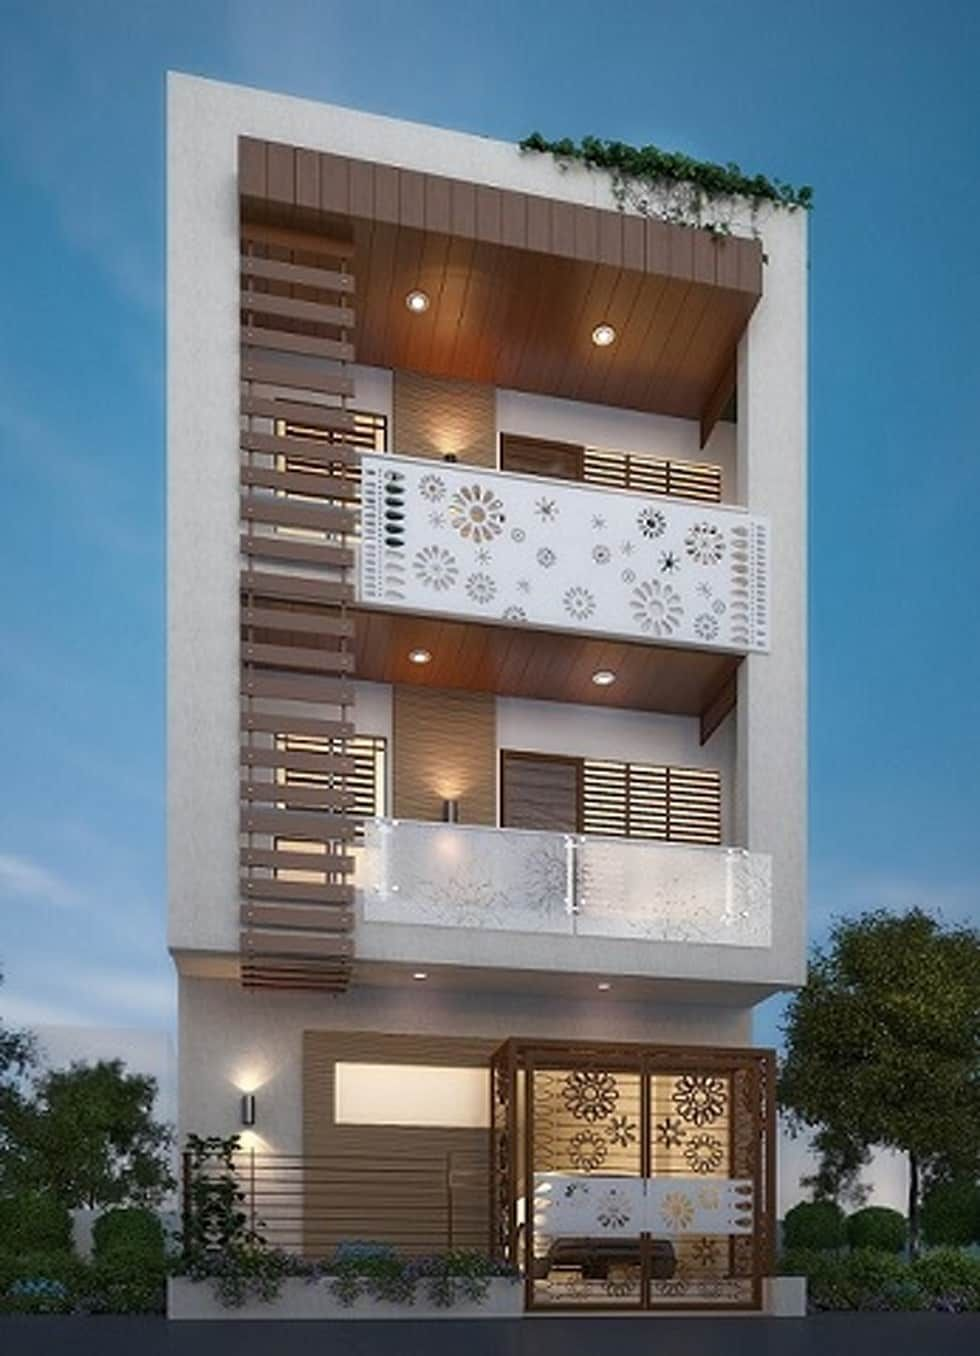 House Front Design House Design Front Elevation Designs: Af: Houses By Art Form Architecture